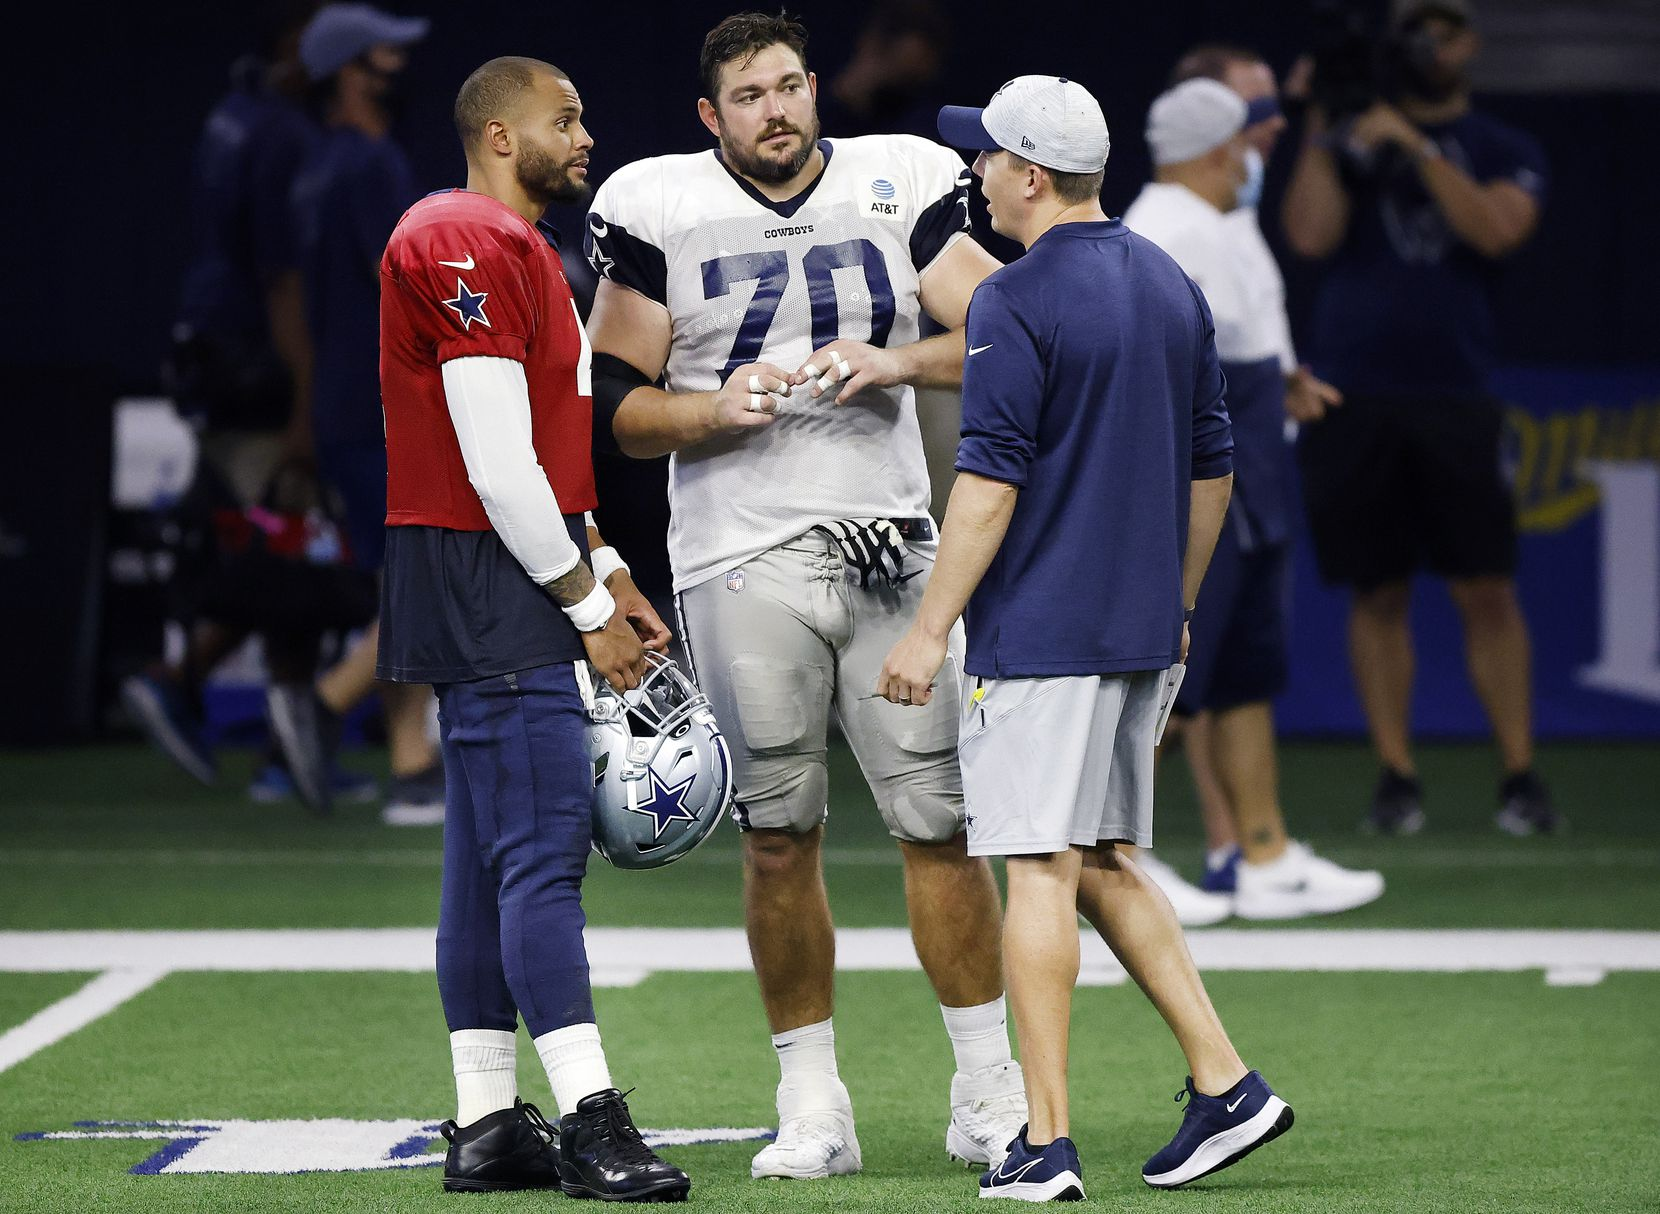 Dallas Cowboys guard Zack Martin (70) and quarterback Dak Prescott (4) visited with offensive coordinator Kellen Moore during training camp practice at The Star in Frisco on Aug. 27, 2021.